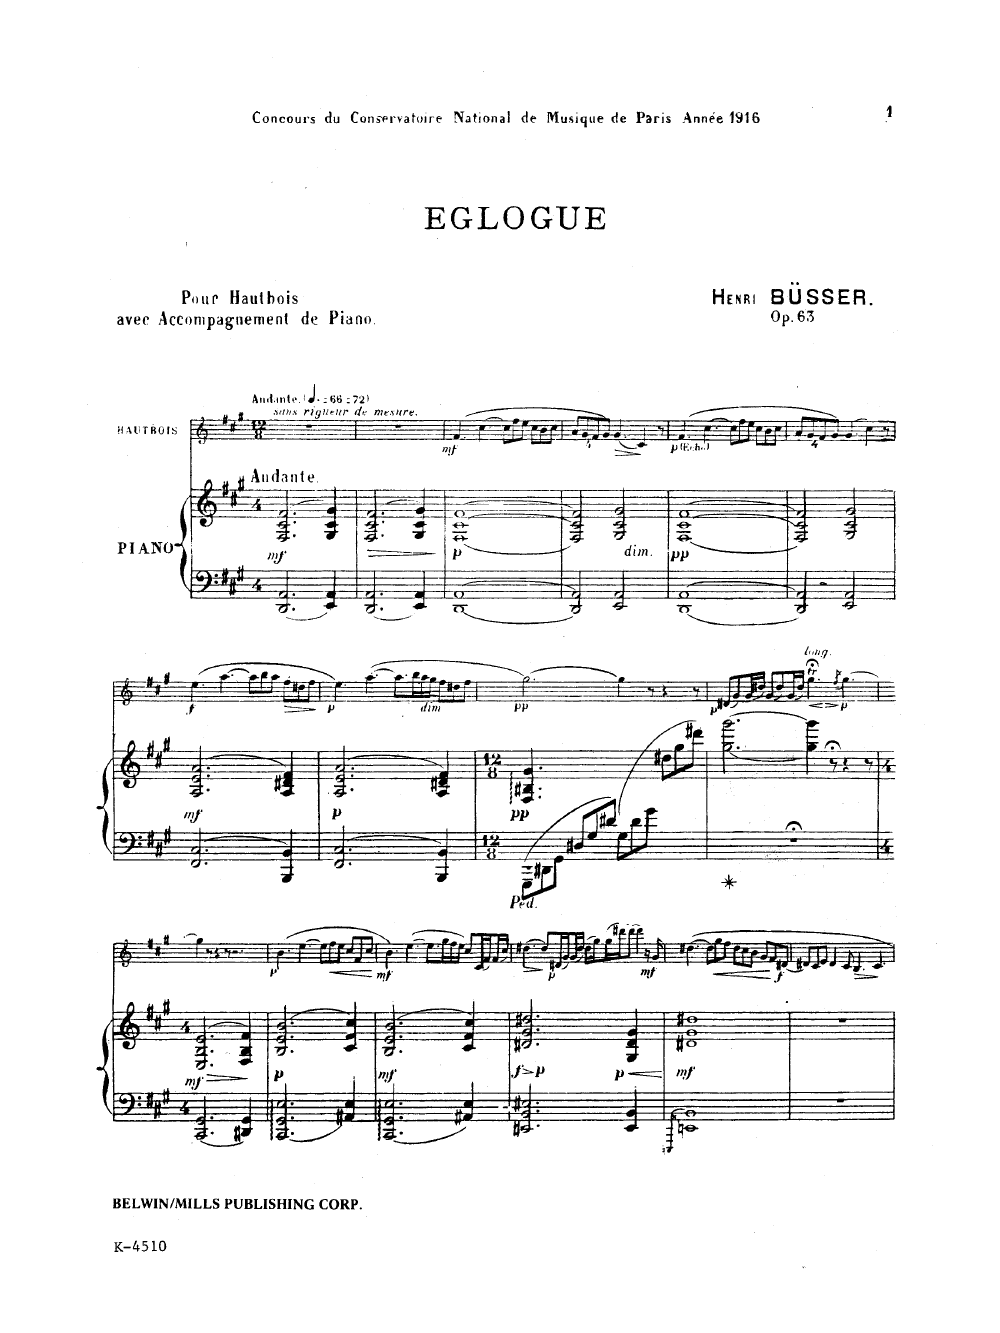 Full Study and Miniature Scores